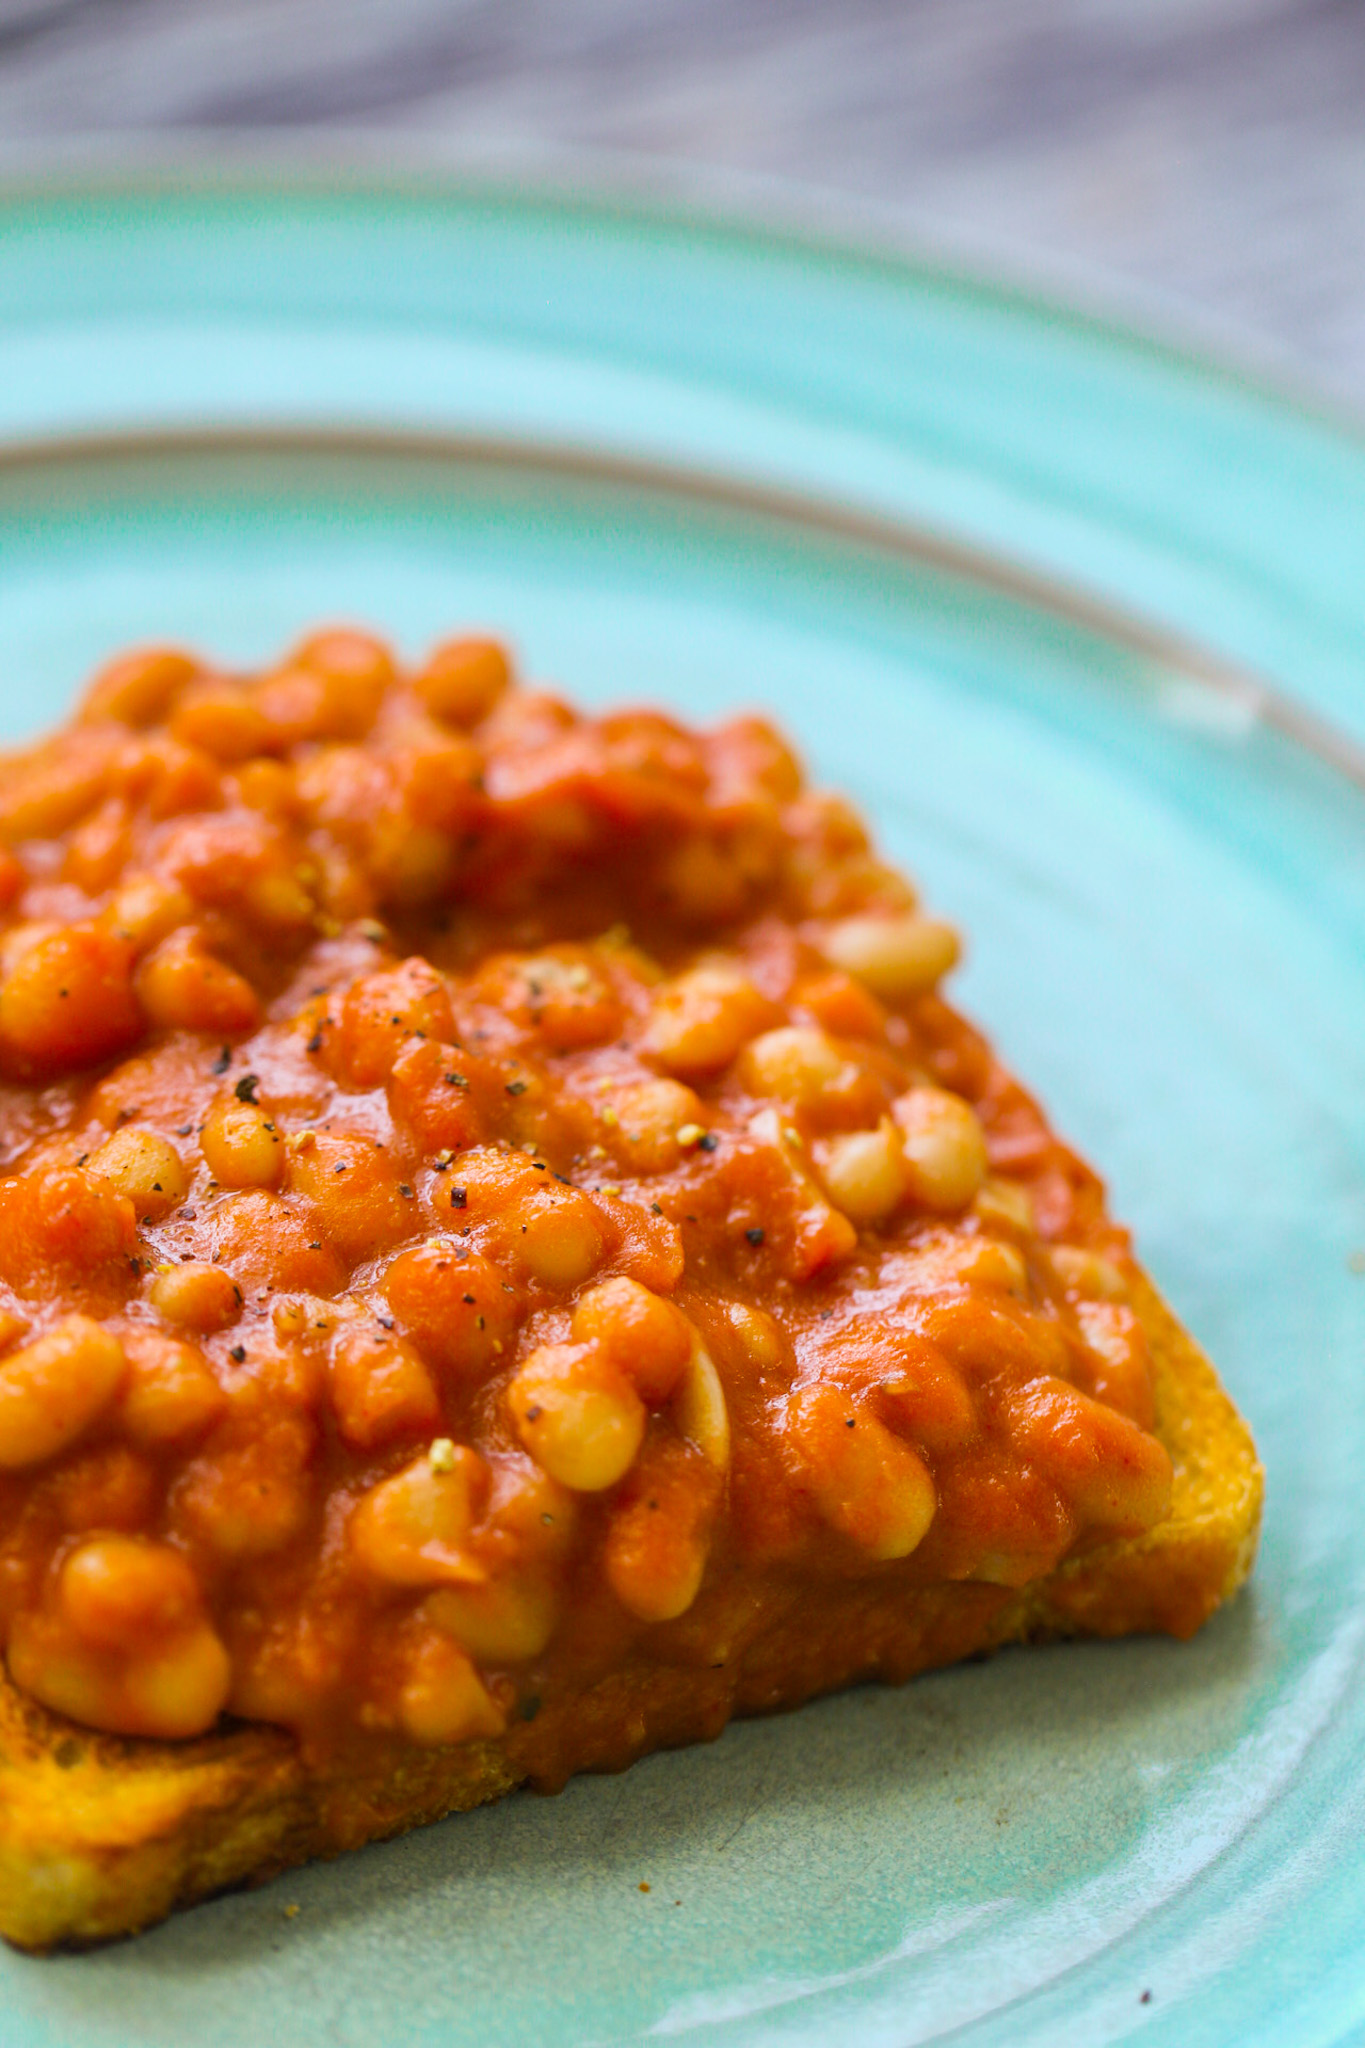 saucey baked beans on toast